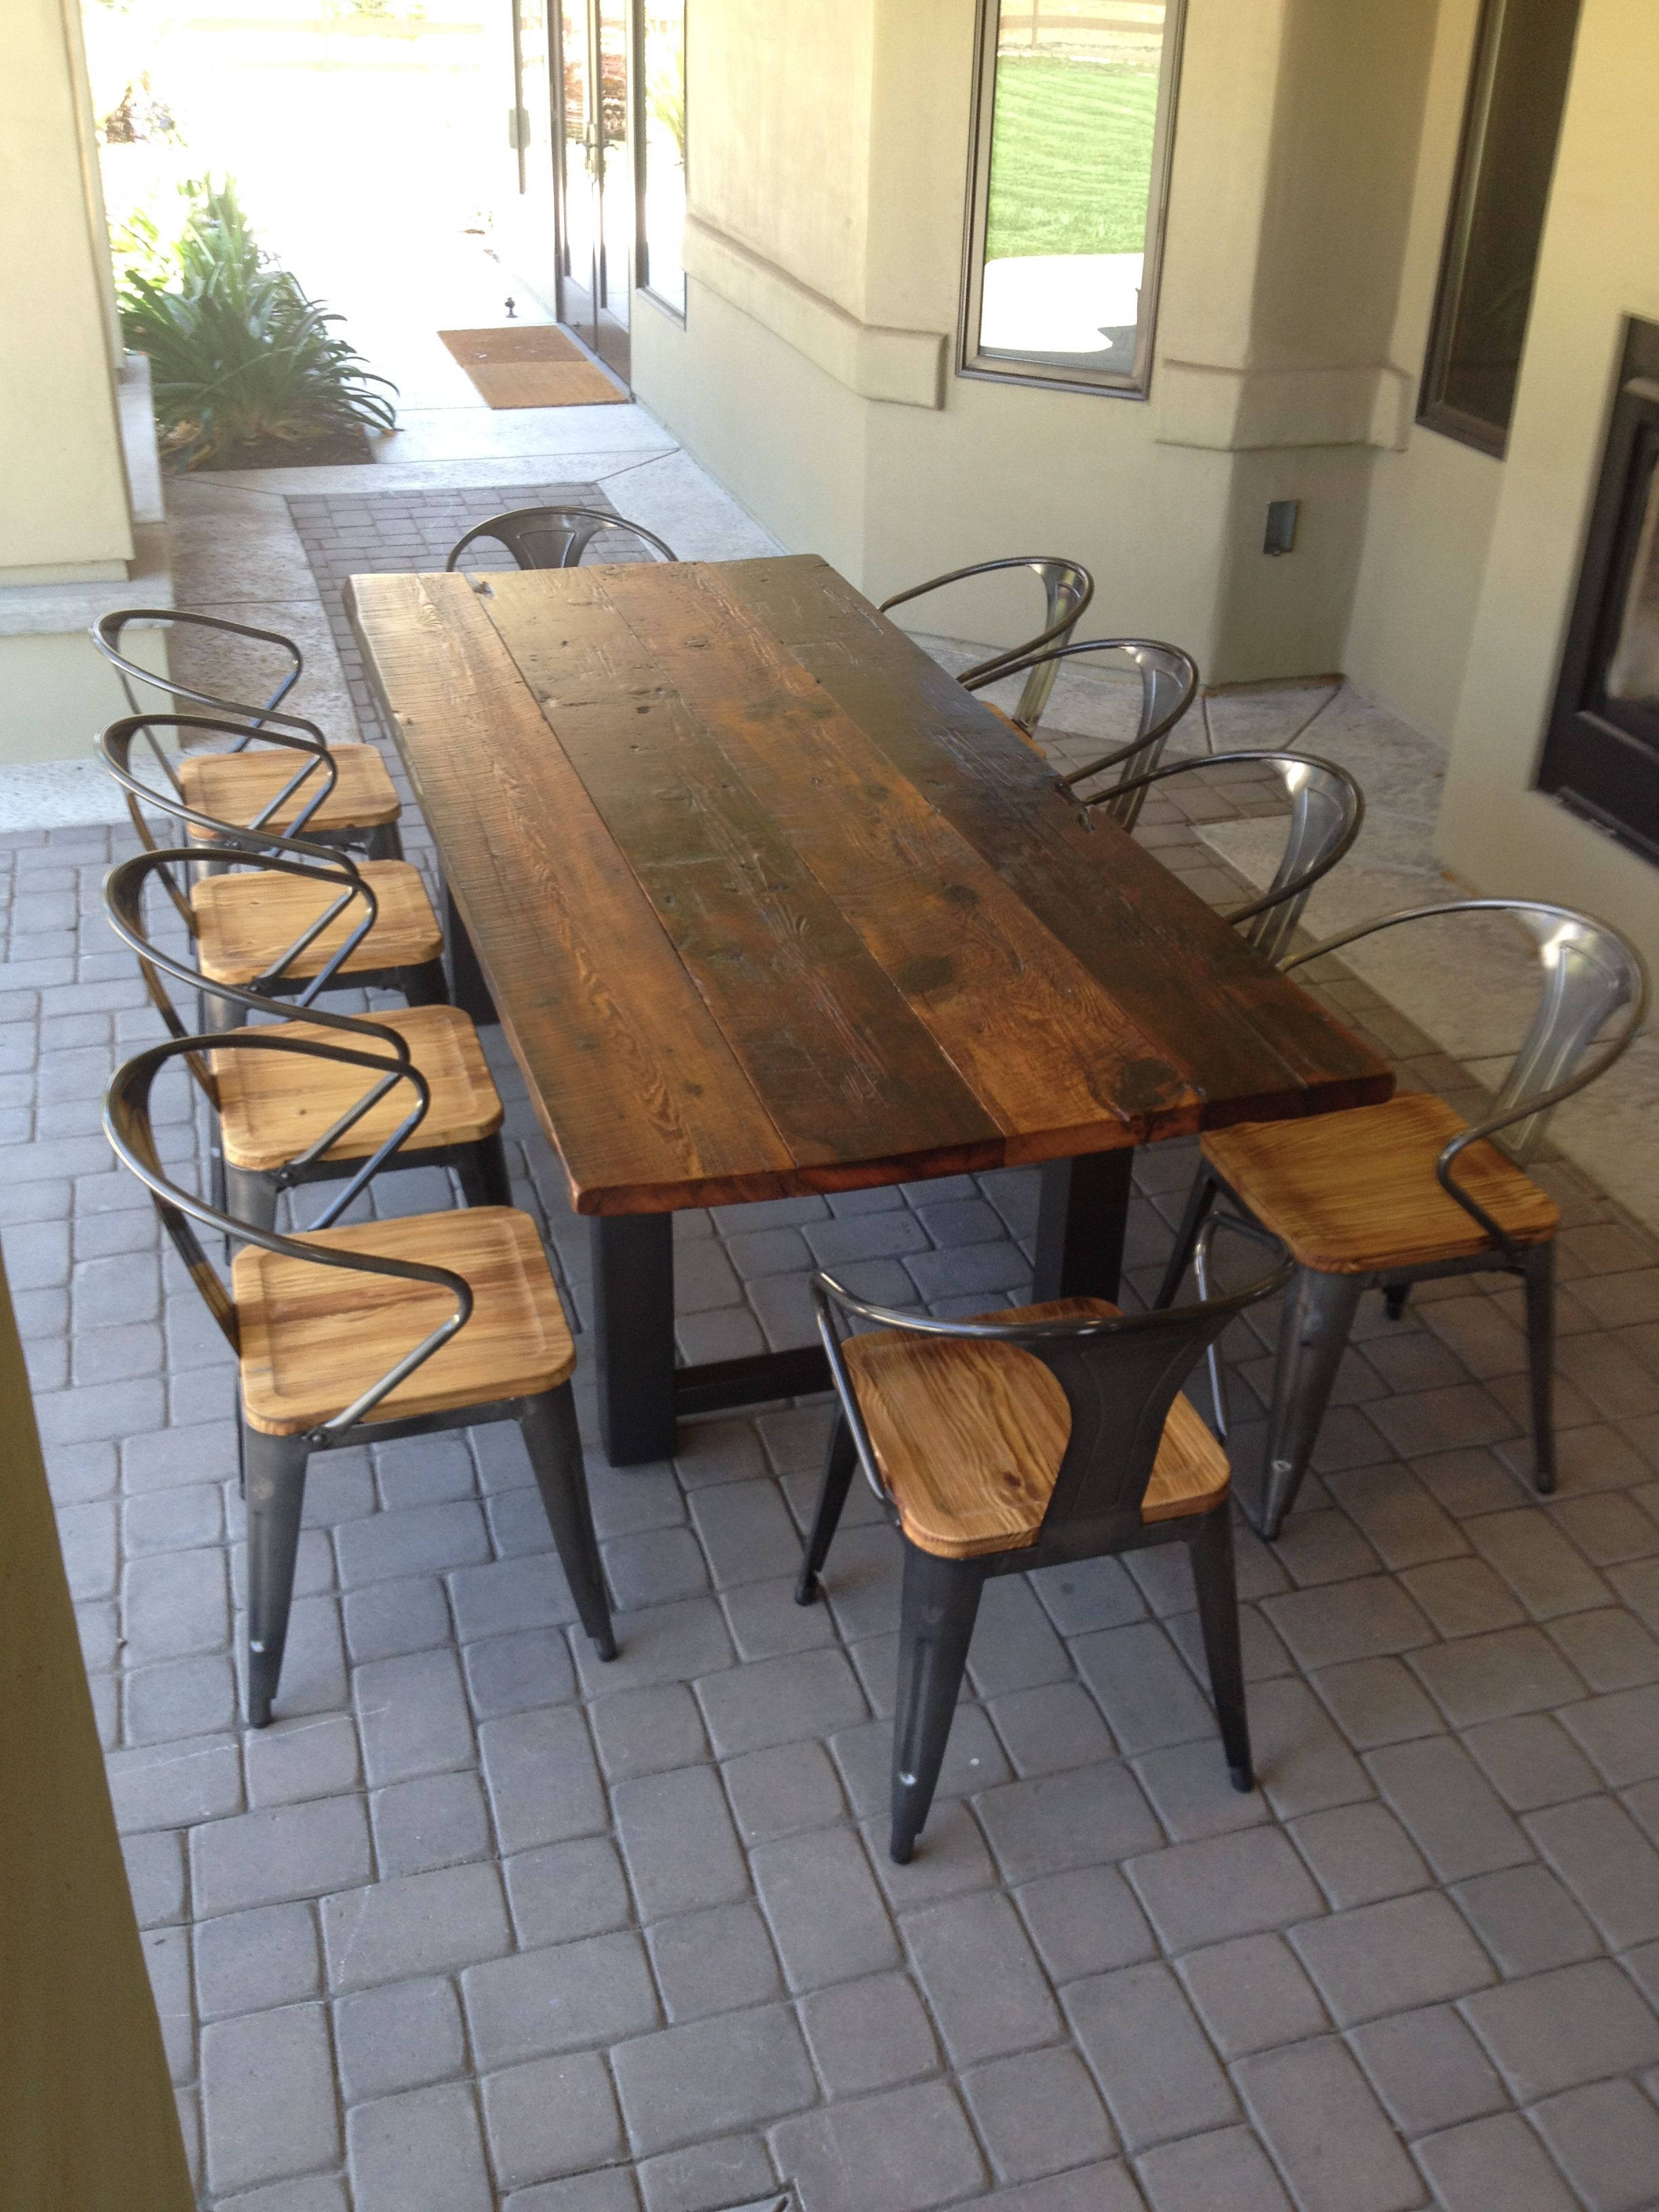 Outdoor Patio Furniture Dining Table Reclaimed Wood And Steel Outdoor Dining Table 1 The Coastal